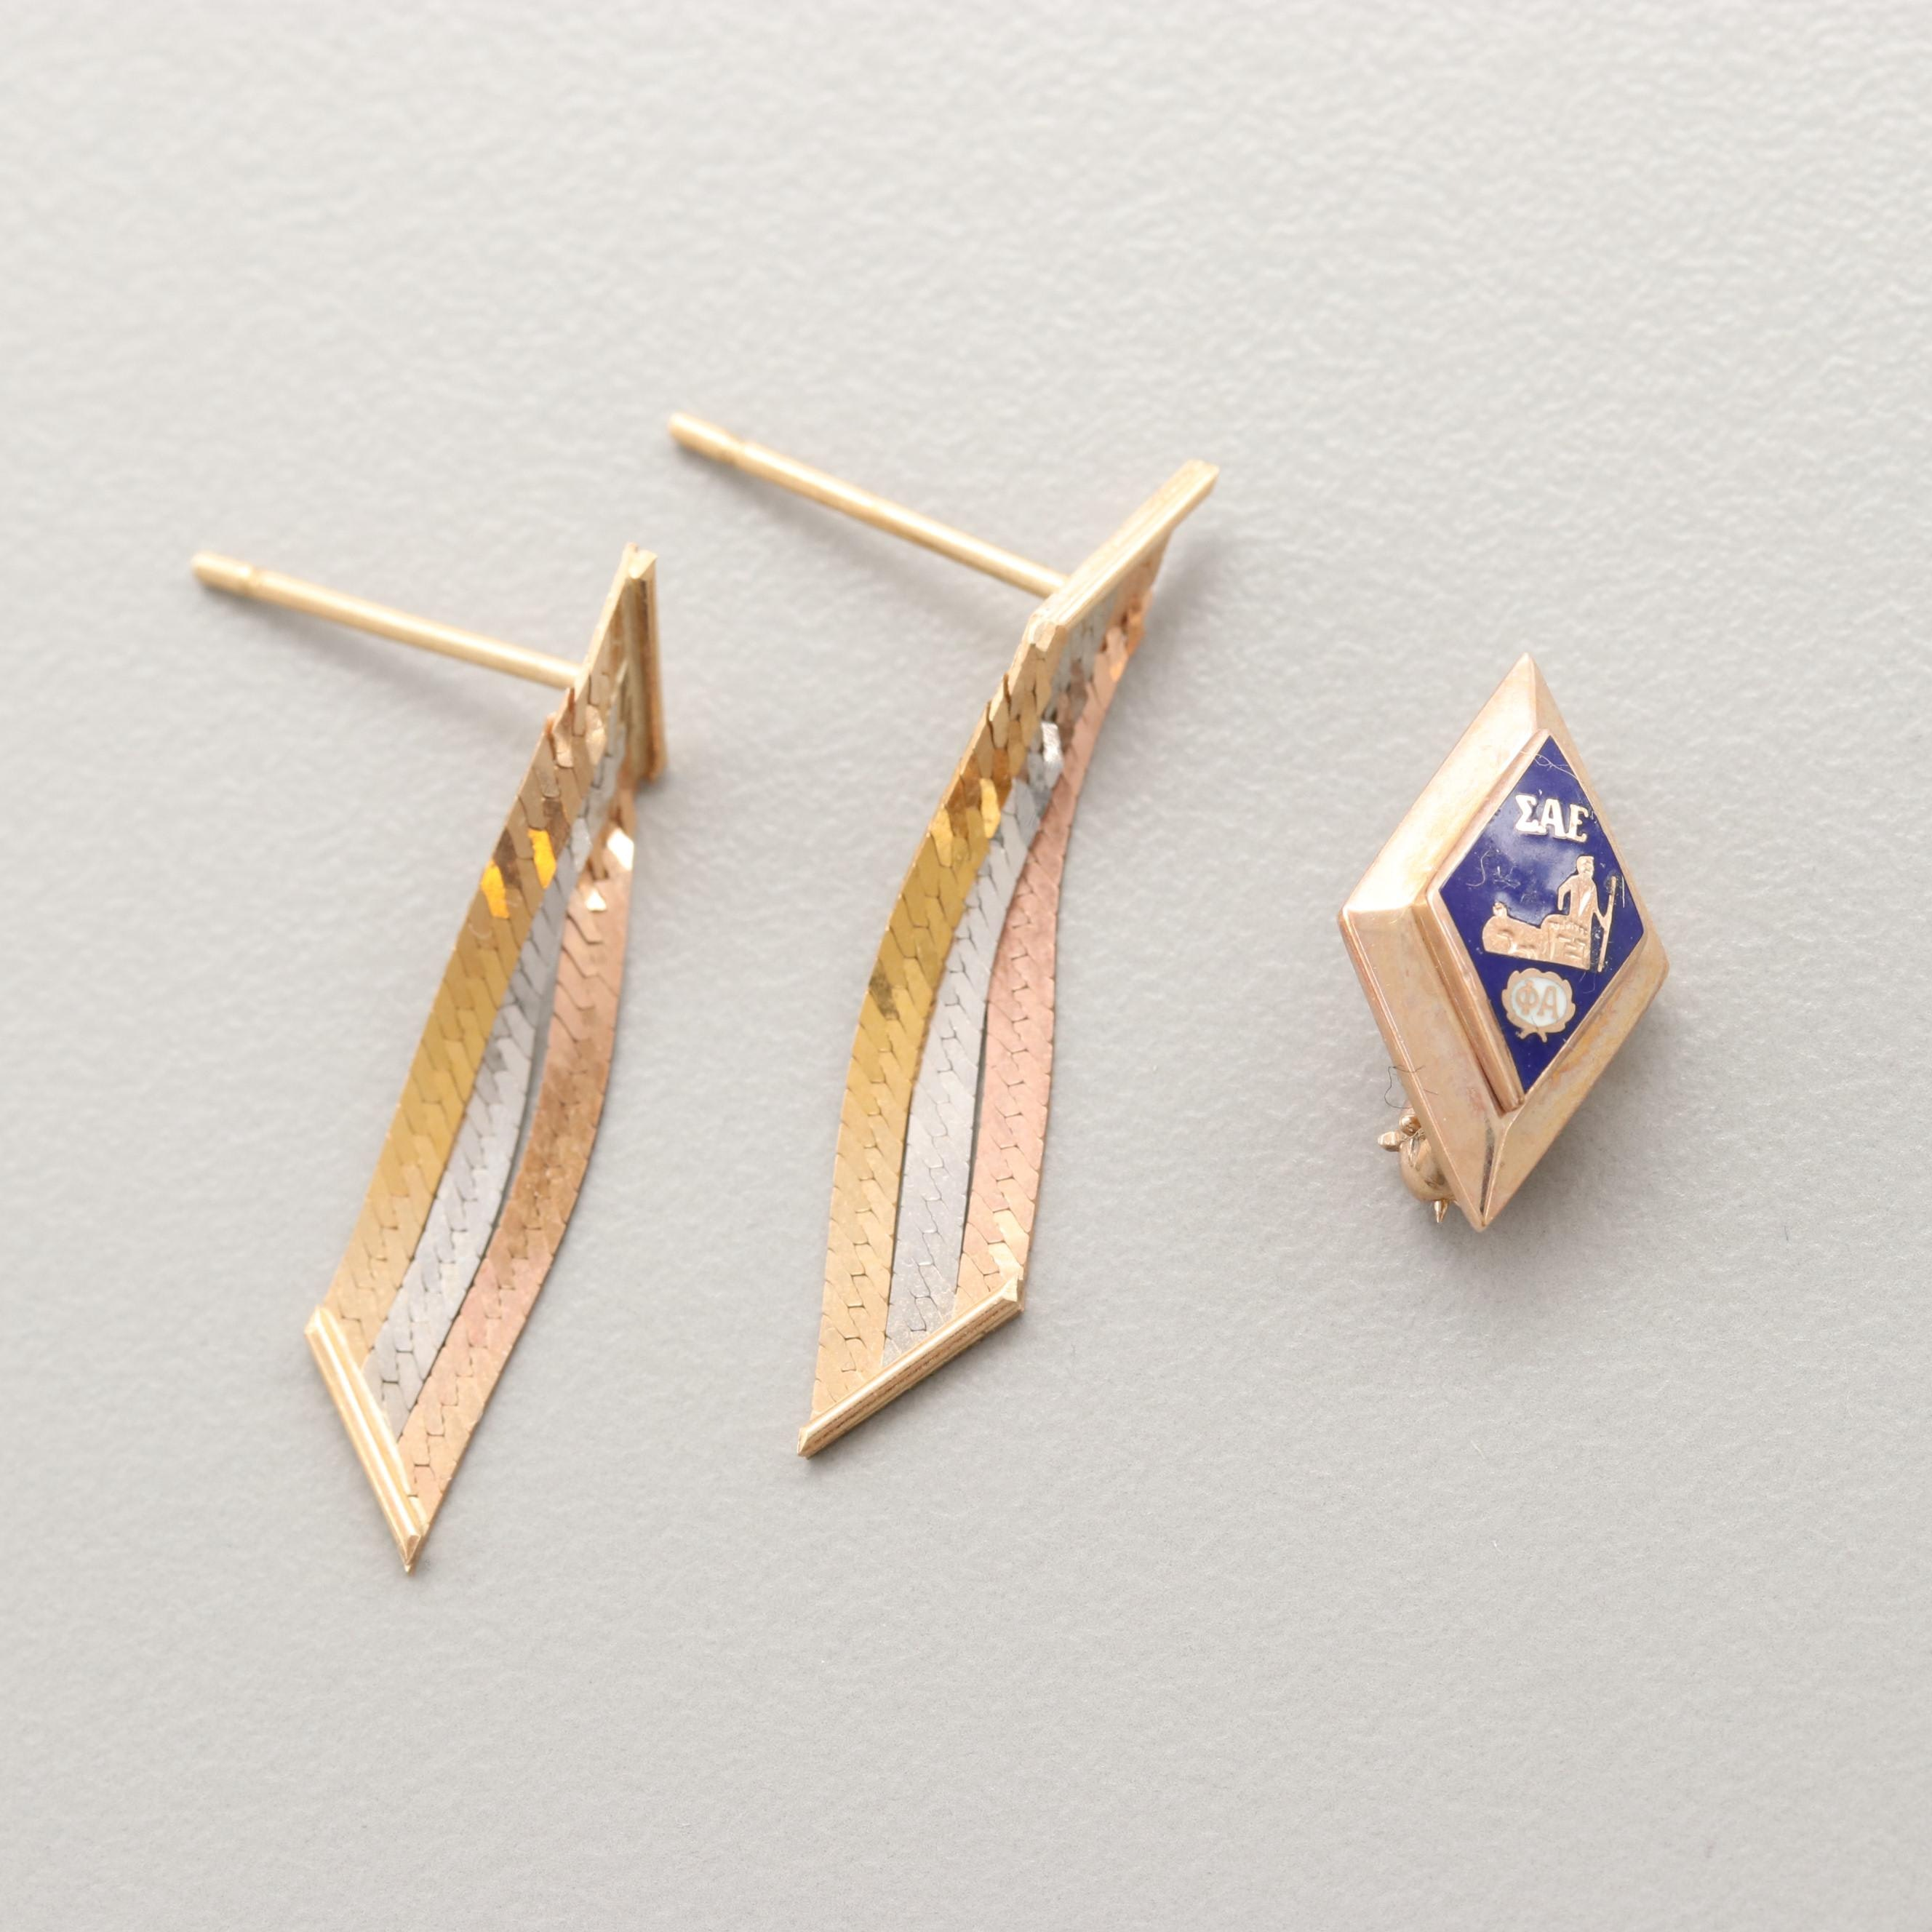 14K Tricolor and 10K Yellow Gold Earrings and Enamel Sigma Alpha Epsilon Pin